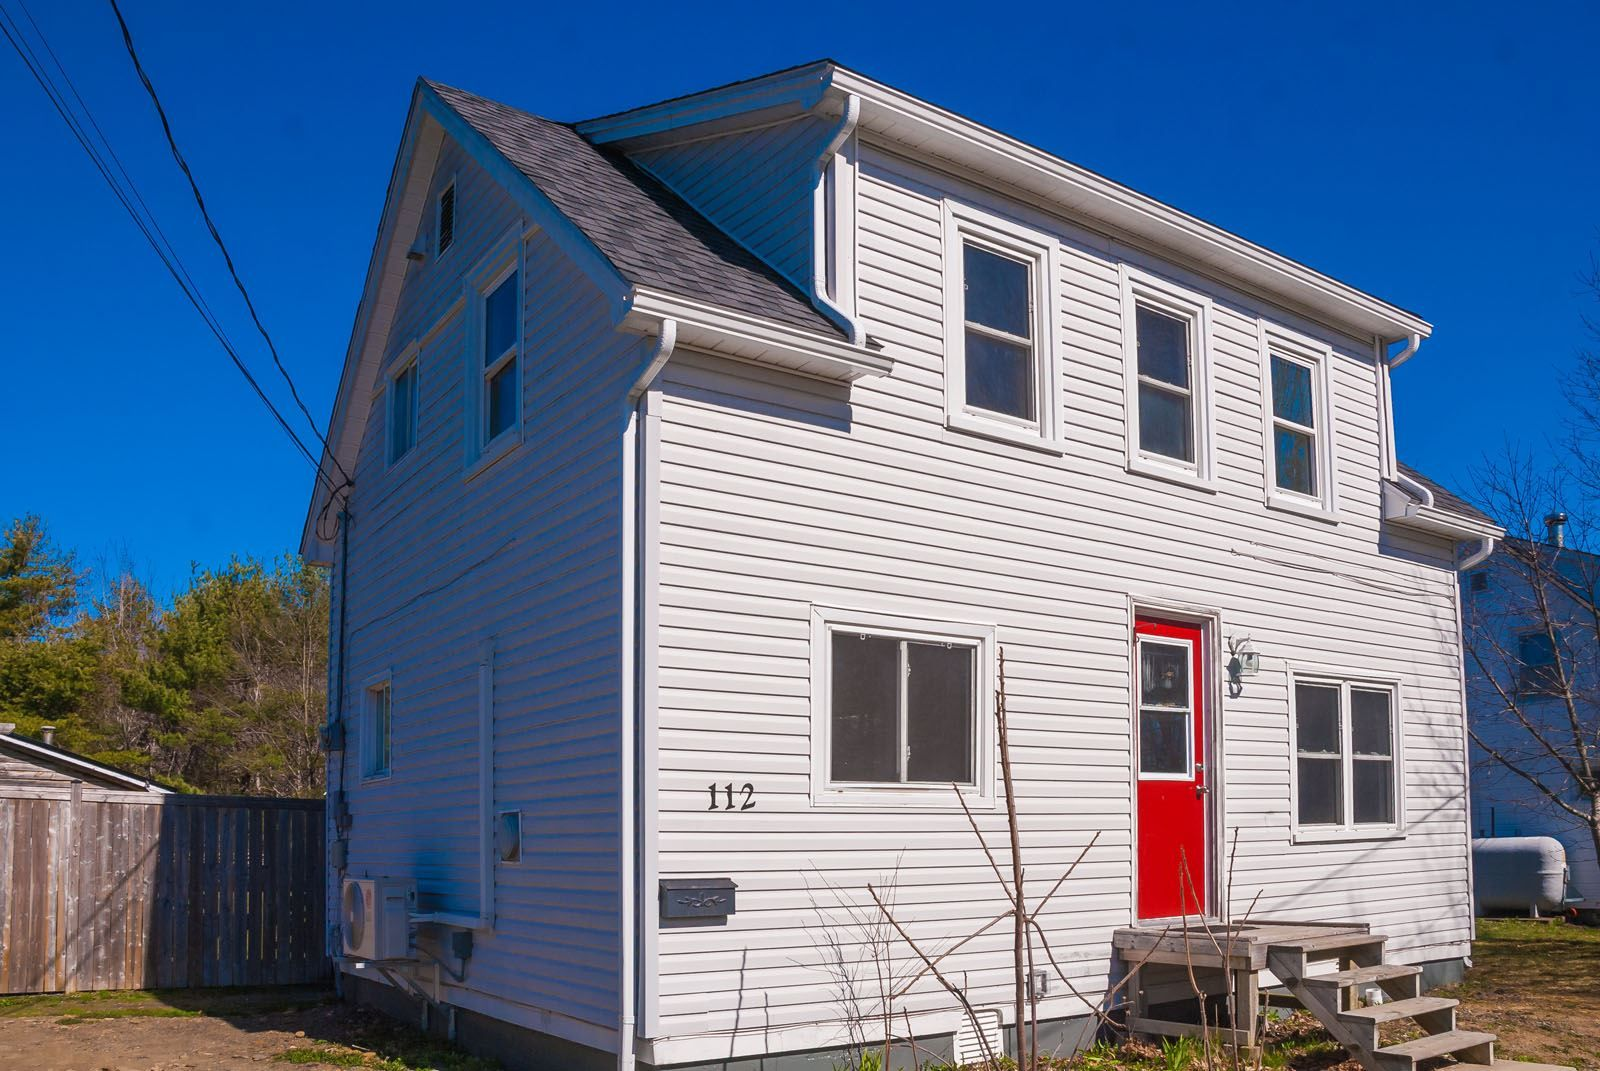 Main Photo: 112 Starr Street in Bridgewater: 405-Lunenburg County Residential for sale (South Shore)  : MLS®# 202108918